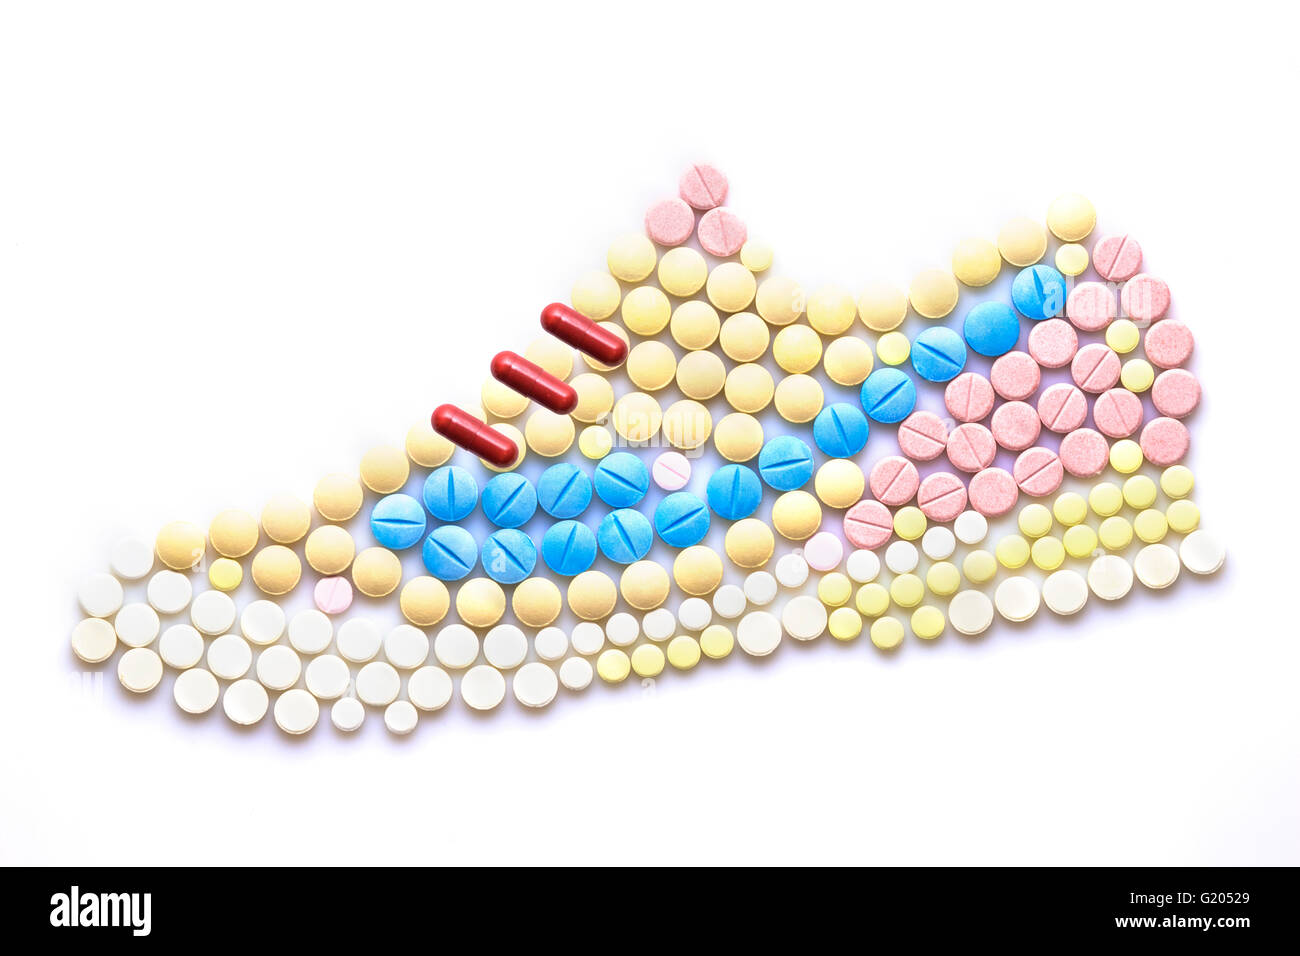 Creative medicine and health care concept made of drugs and pills, in the shape of running shoes. - Stock Image